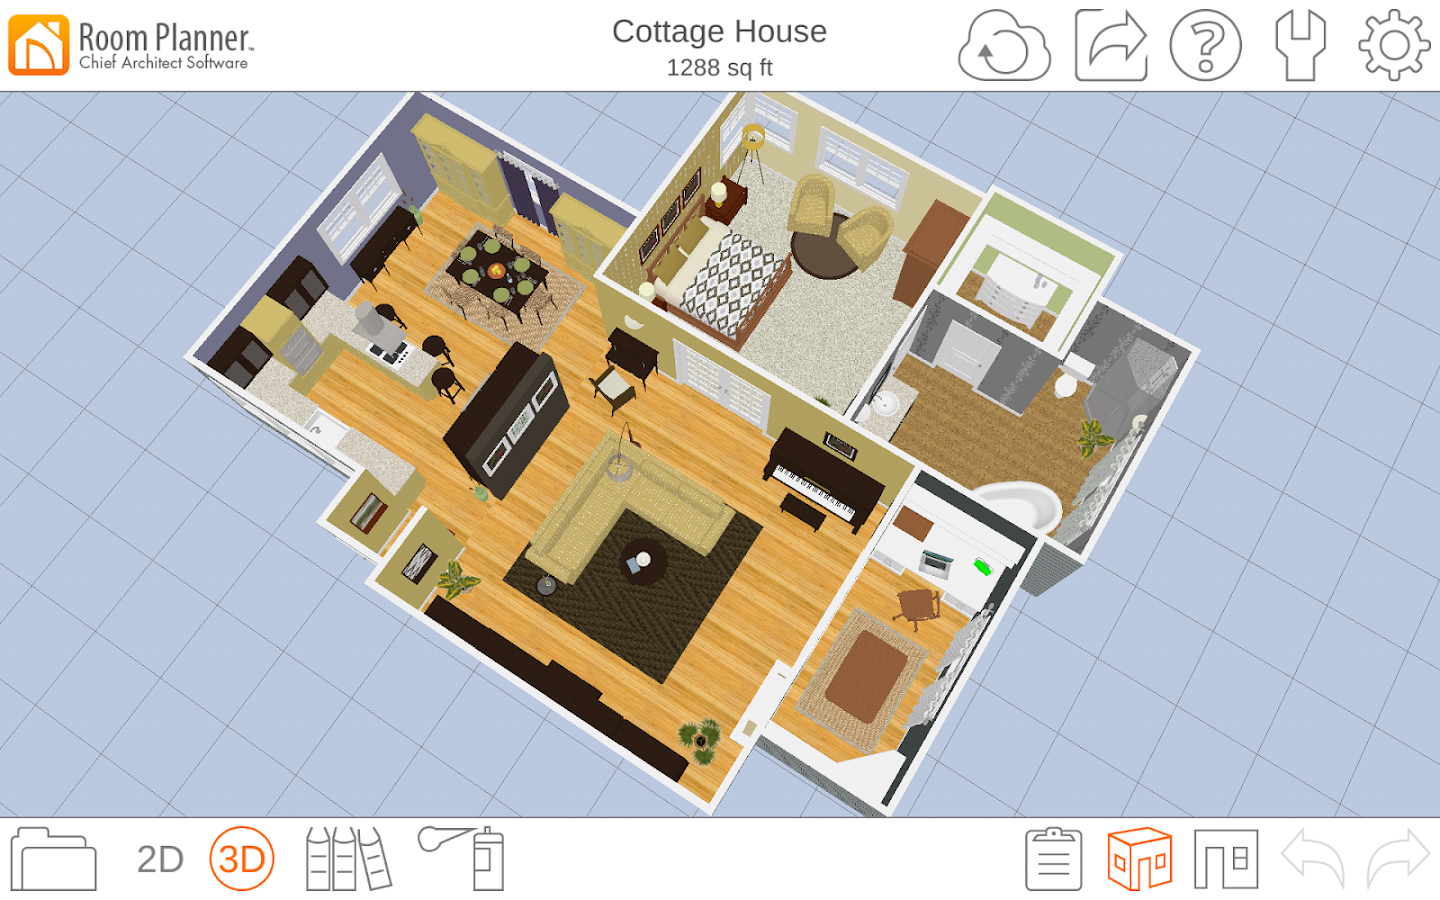 Room planner home design android apps on google play for Best room planner